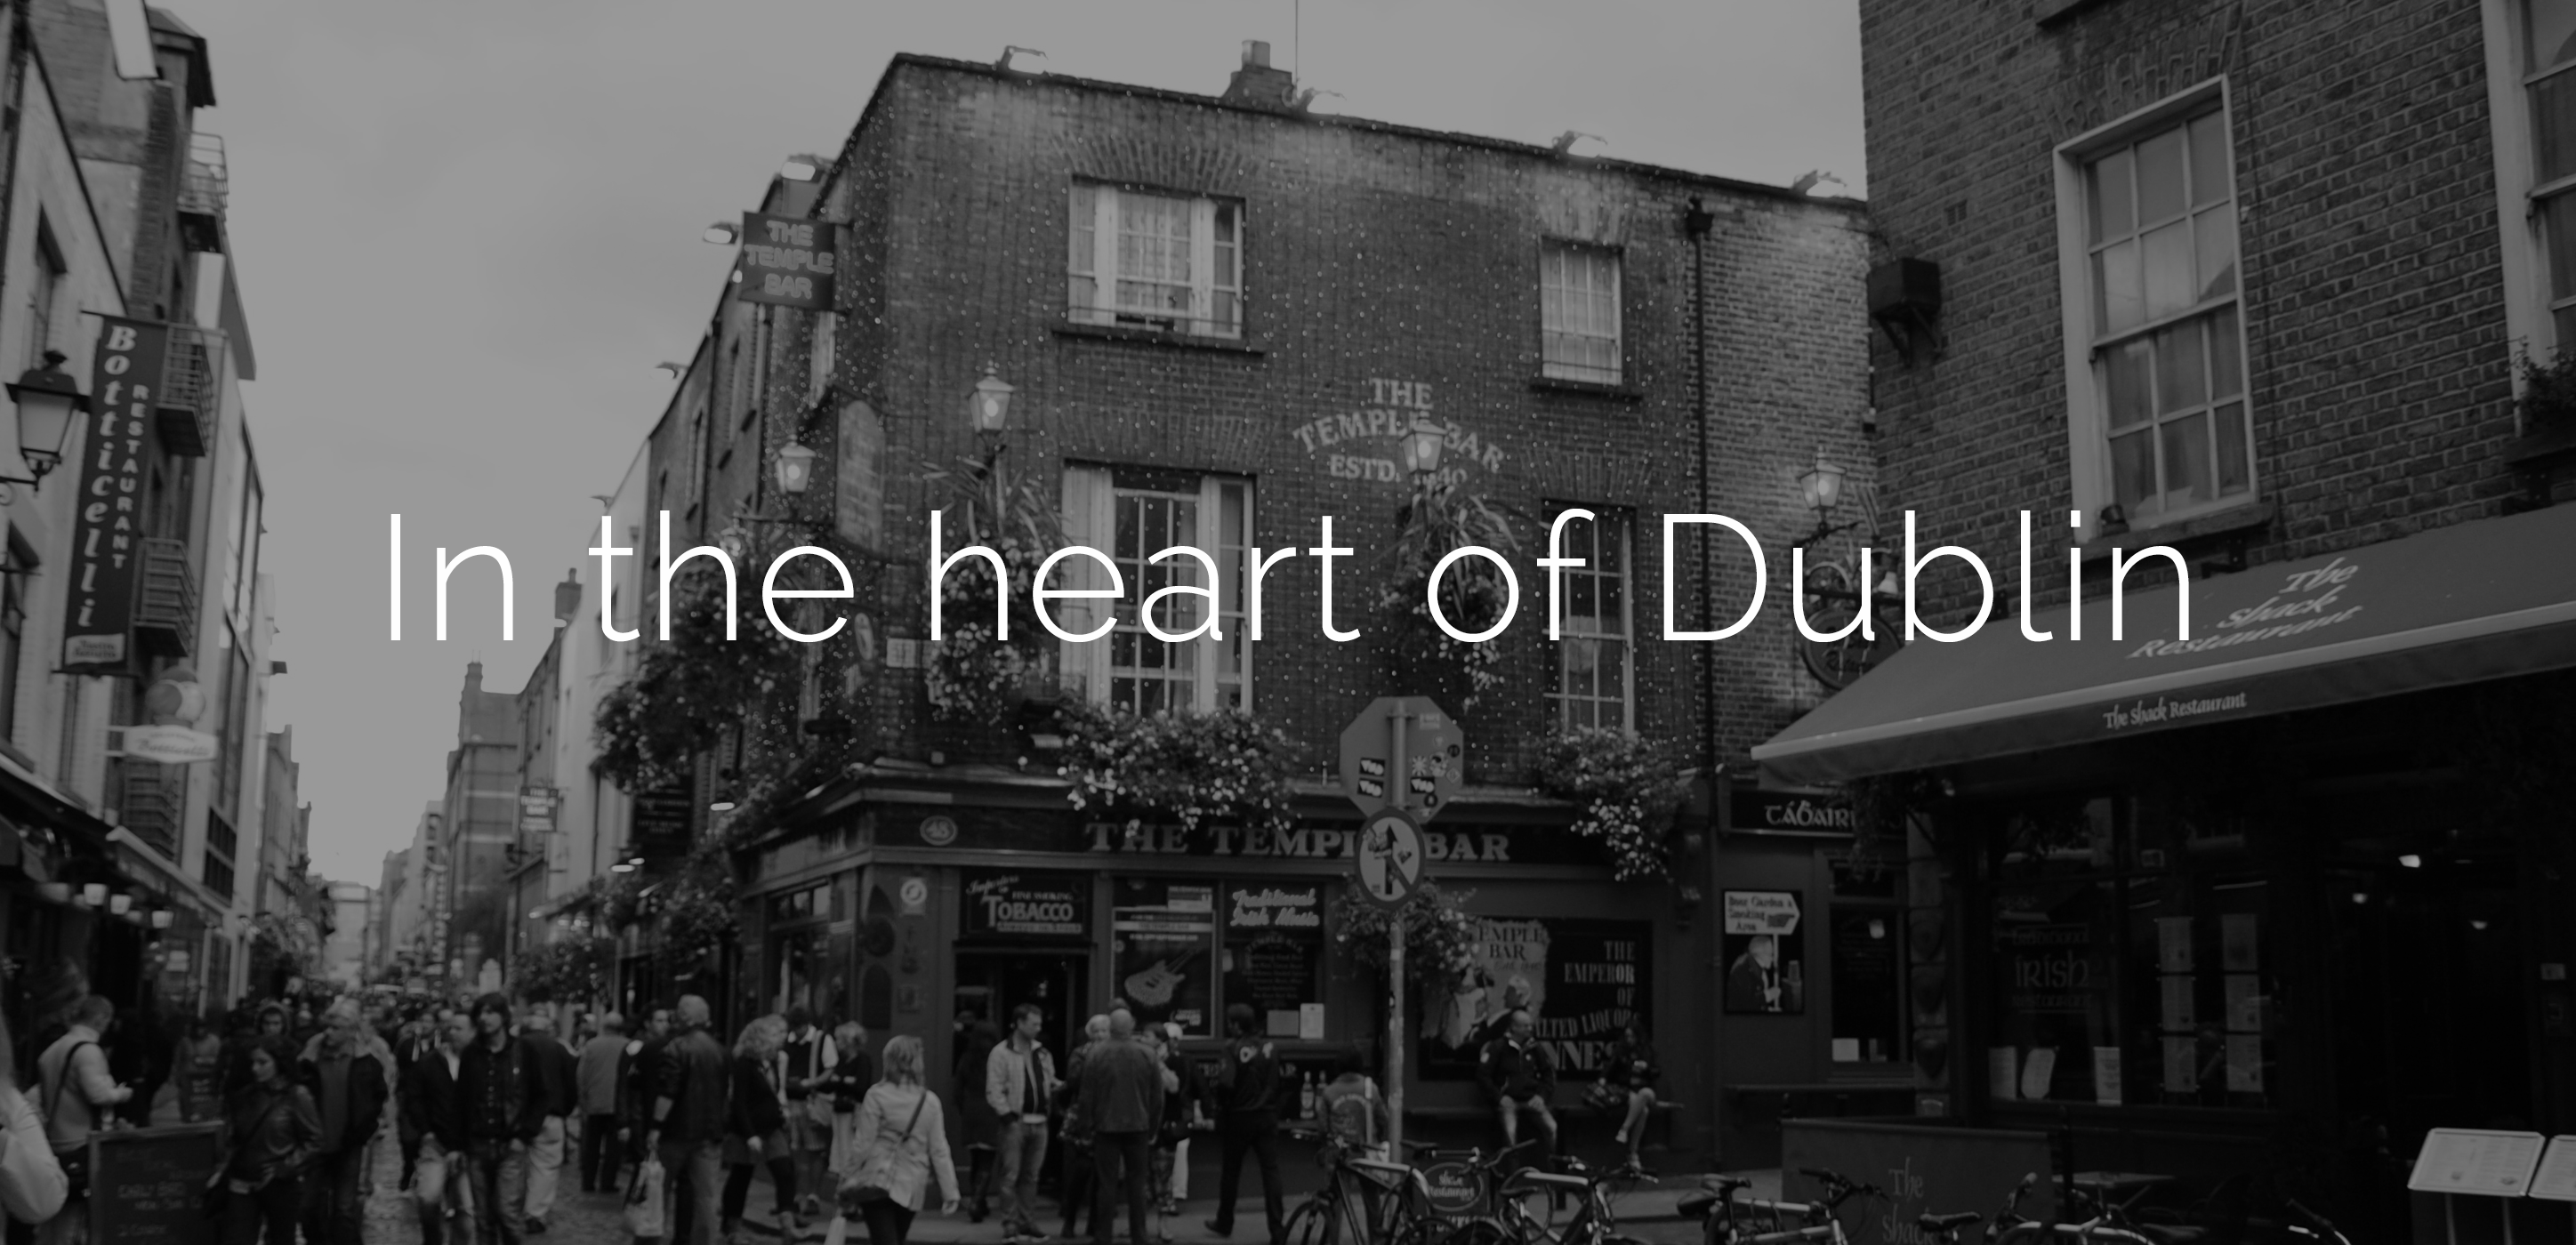 In the heart of Dublin